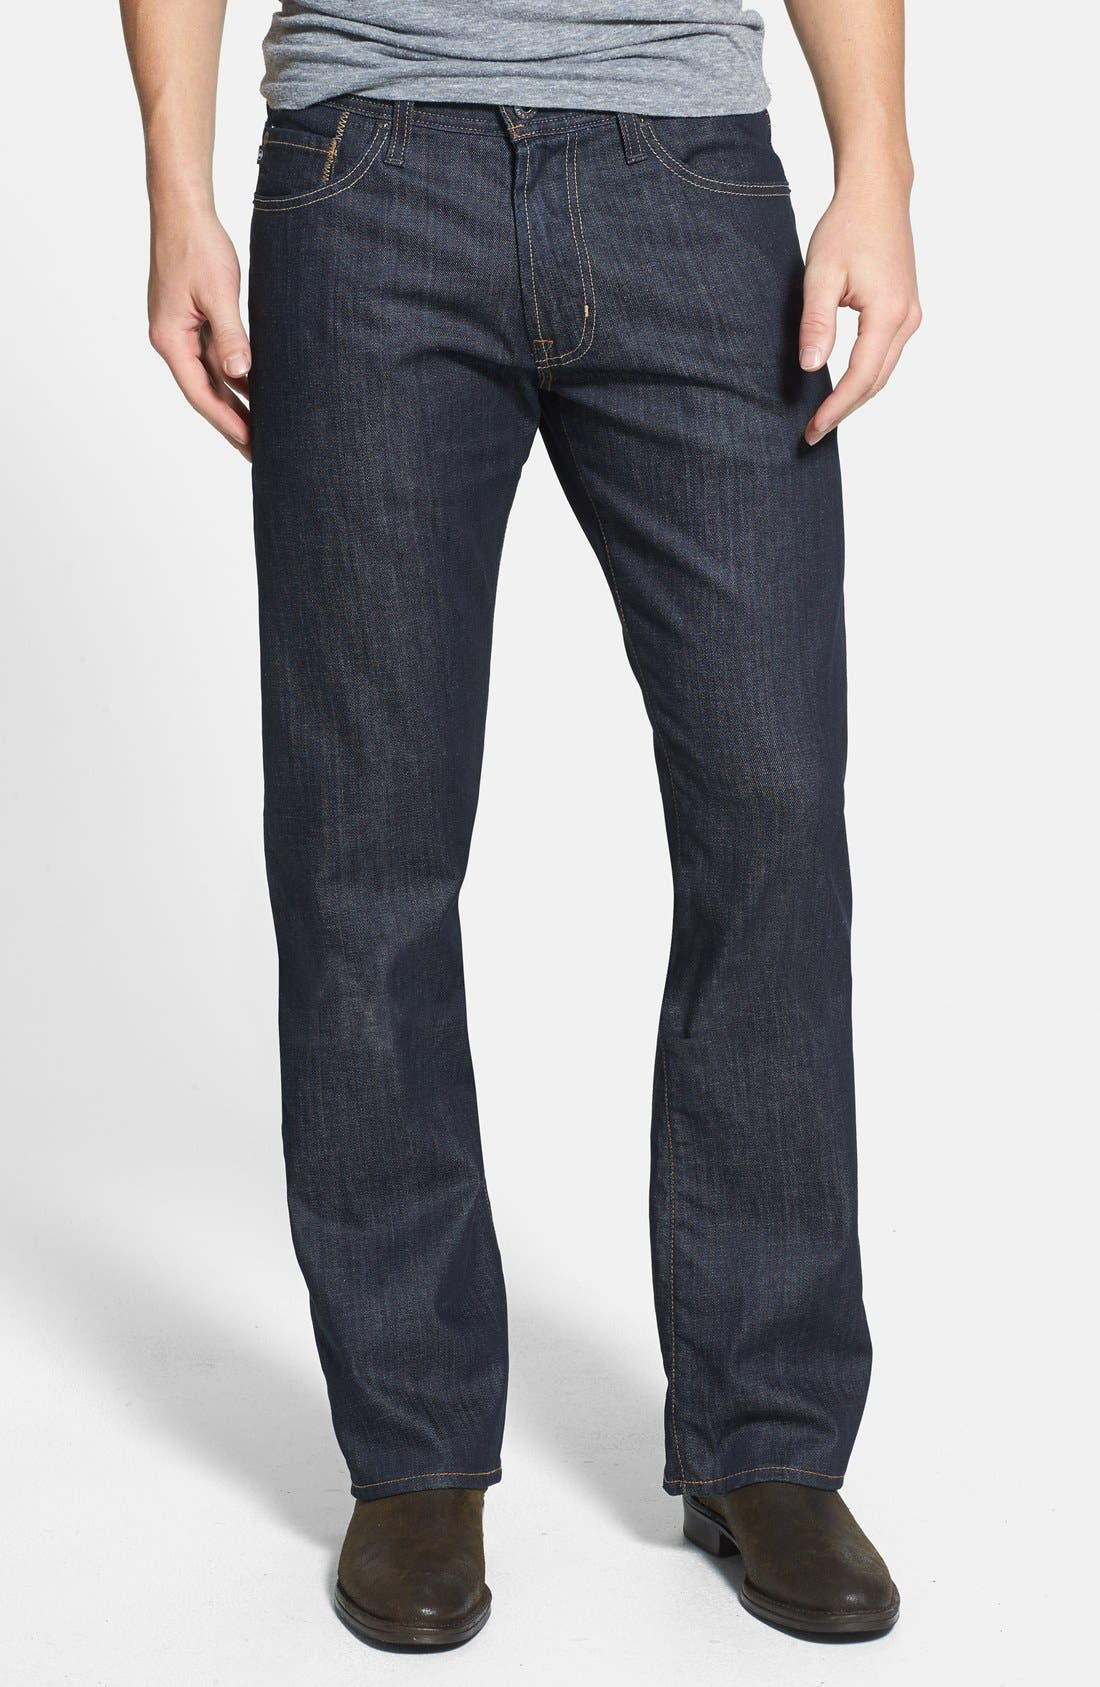 Alternate Image 1 Selected - AG 'Hero' Relaxed Fit Jeans (Trench)